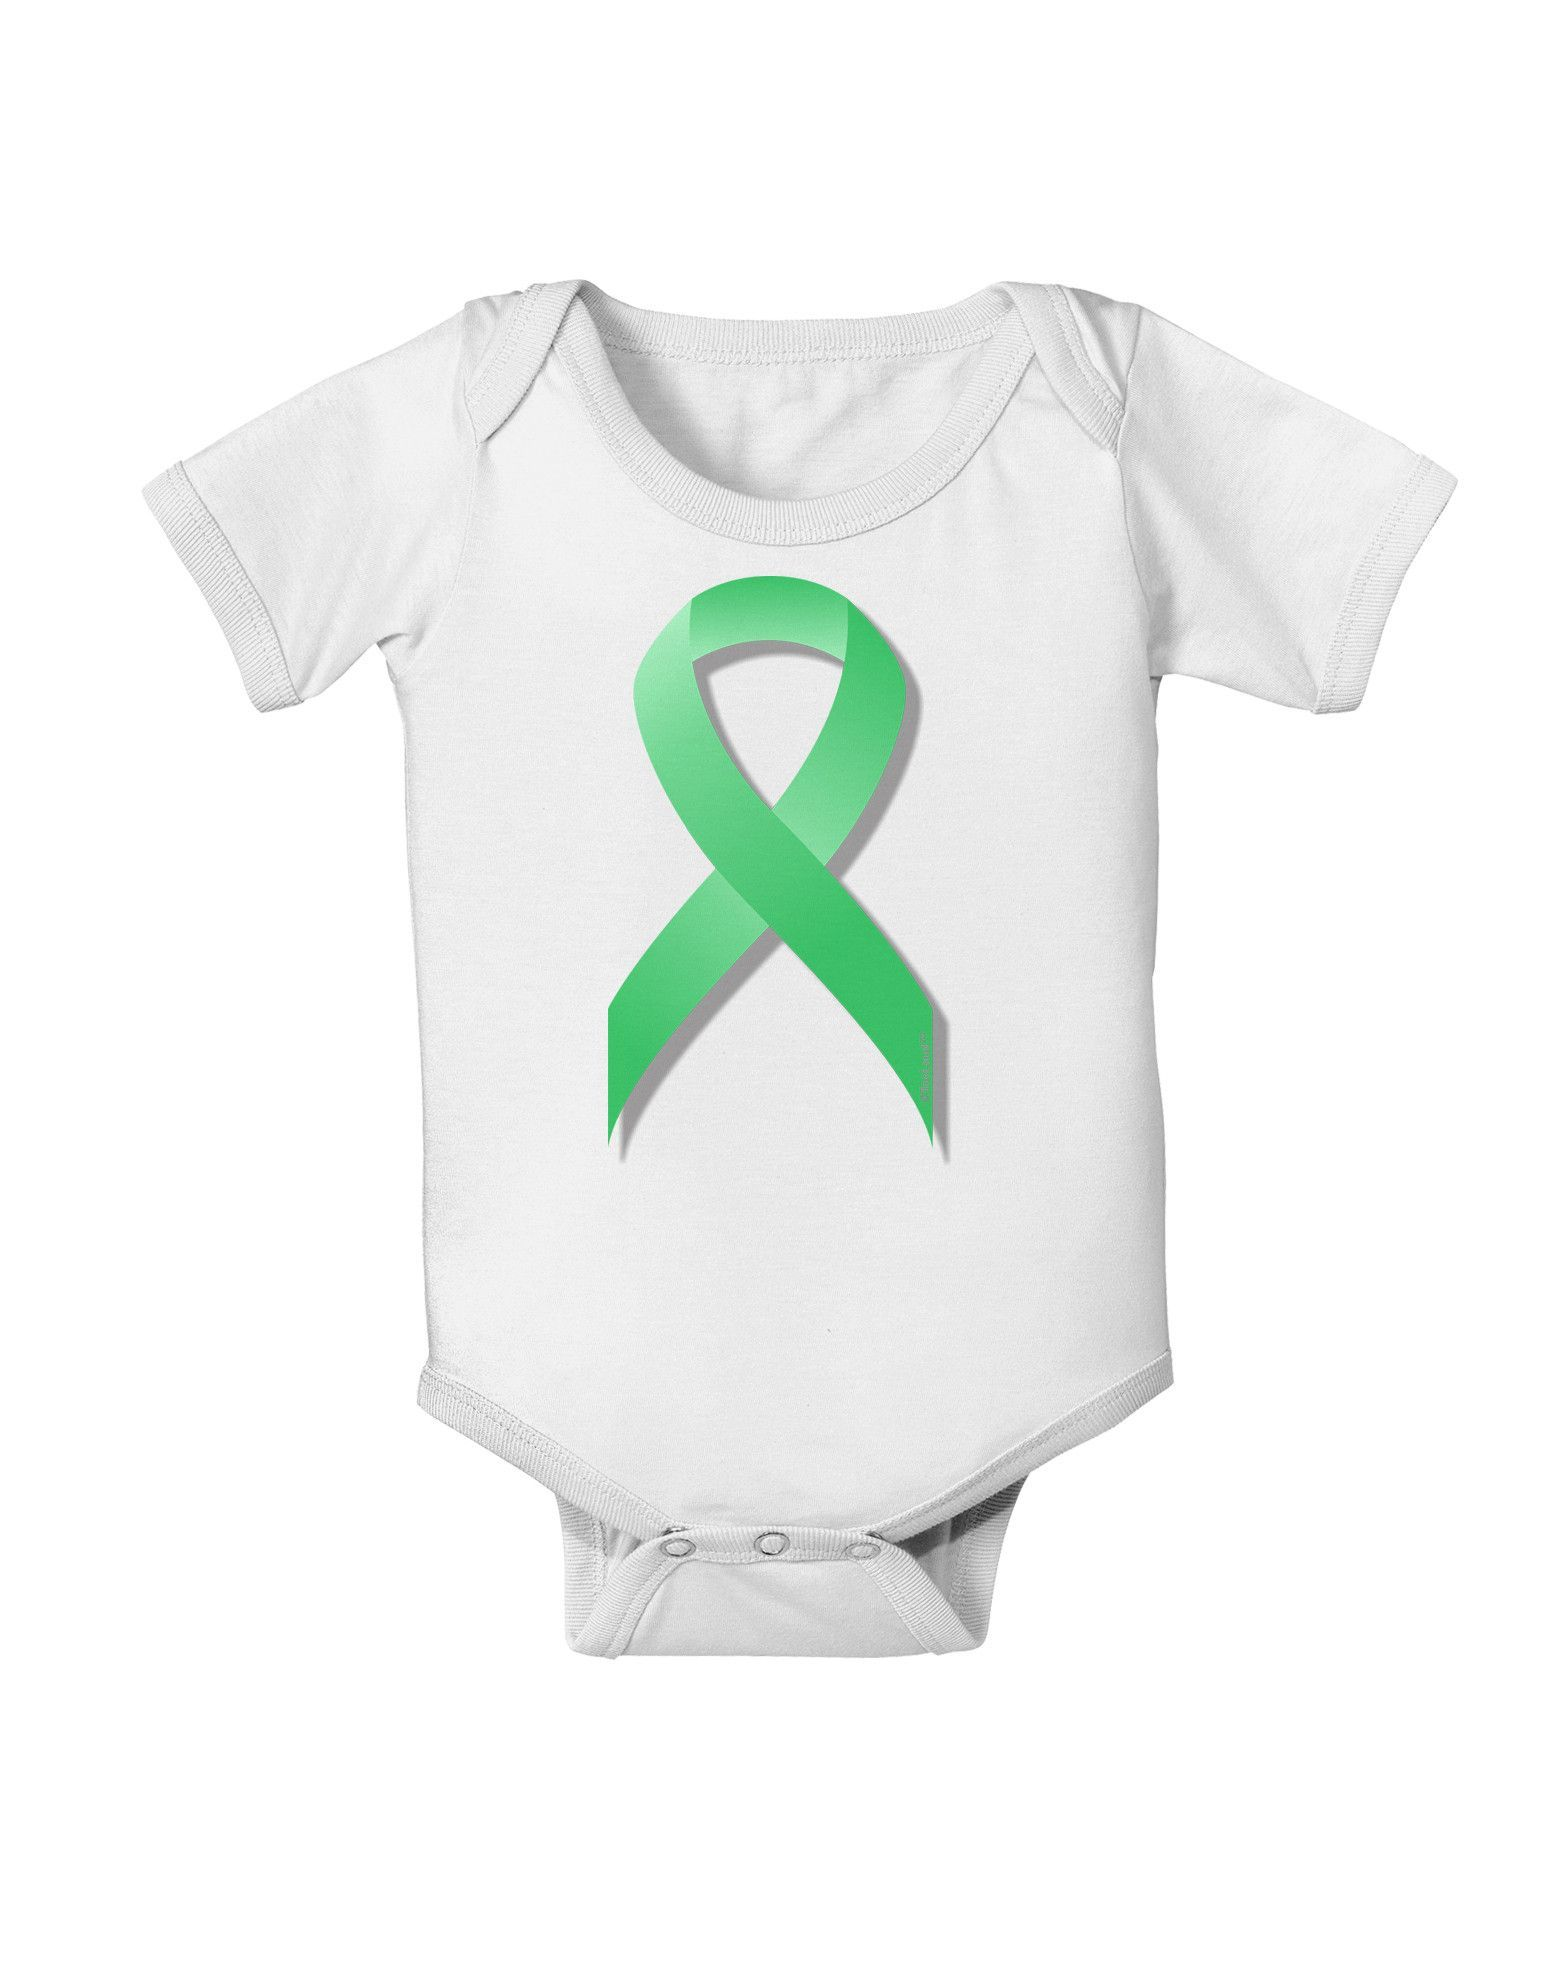 TooLoud Celiac Disease Awareness Ribbon - Light Green Baby Romper Bodysuit